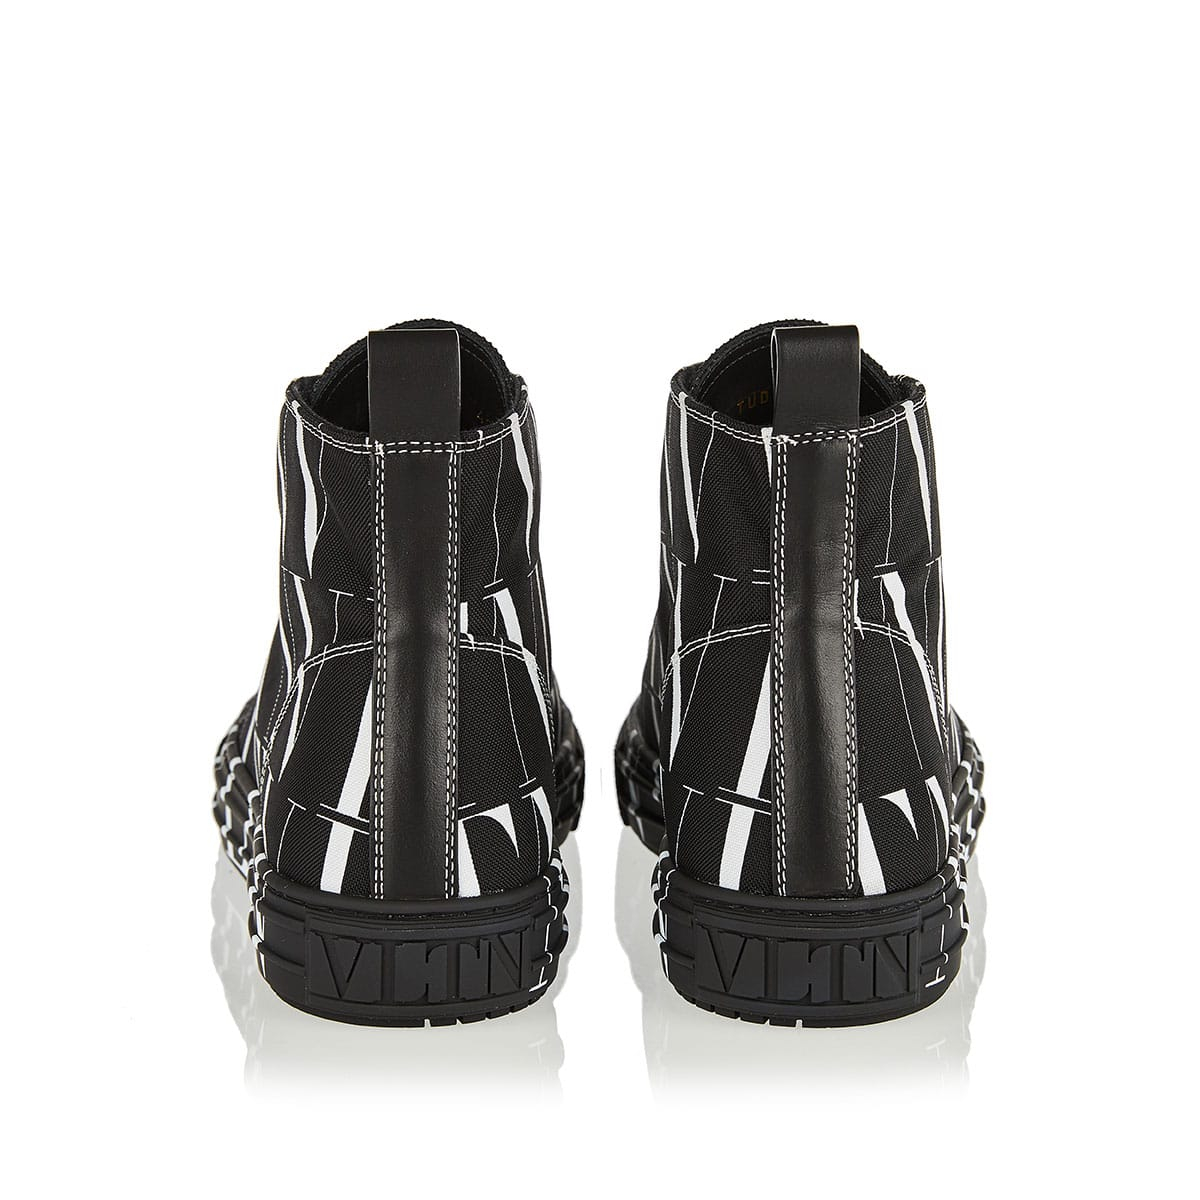 VLTN TIMES giggies canvas sneakers